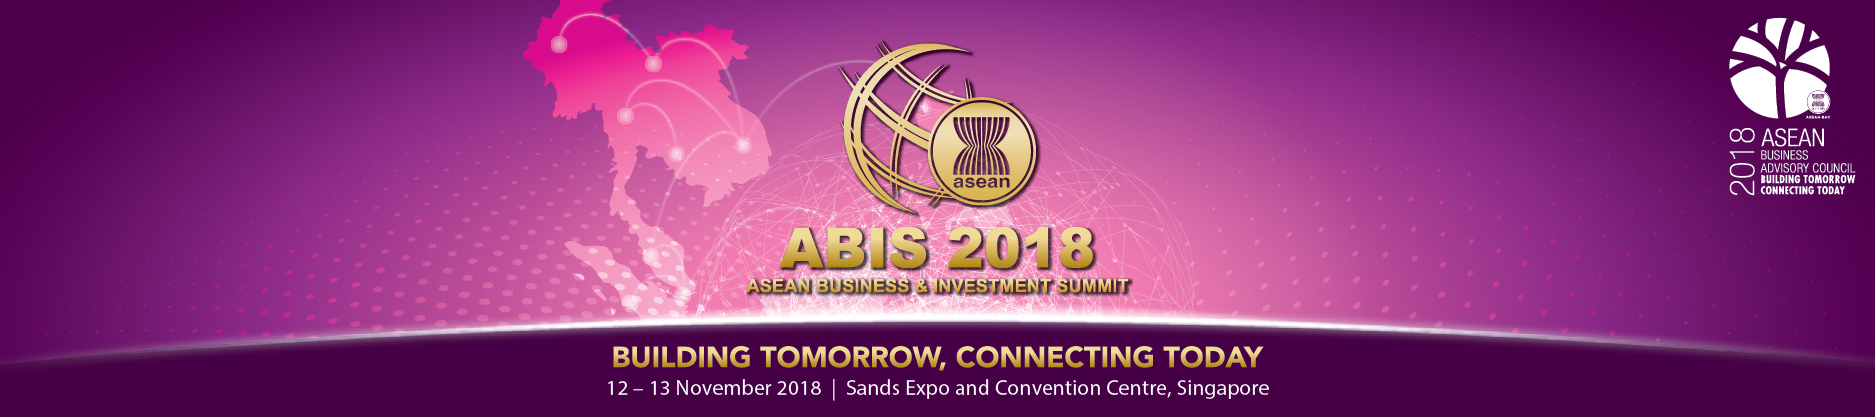 ASEAN Business Awards and ASEAN Business & Investment Summit 2018